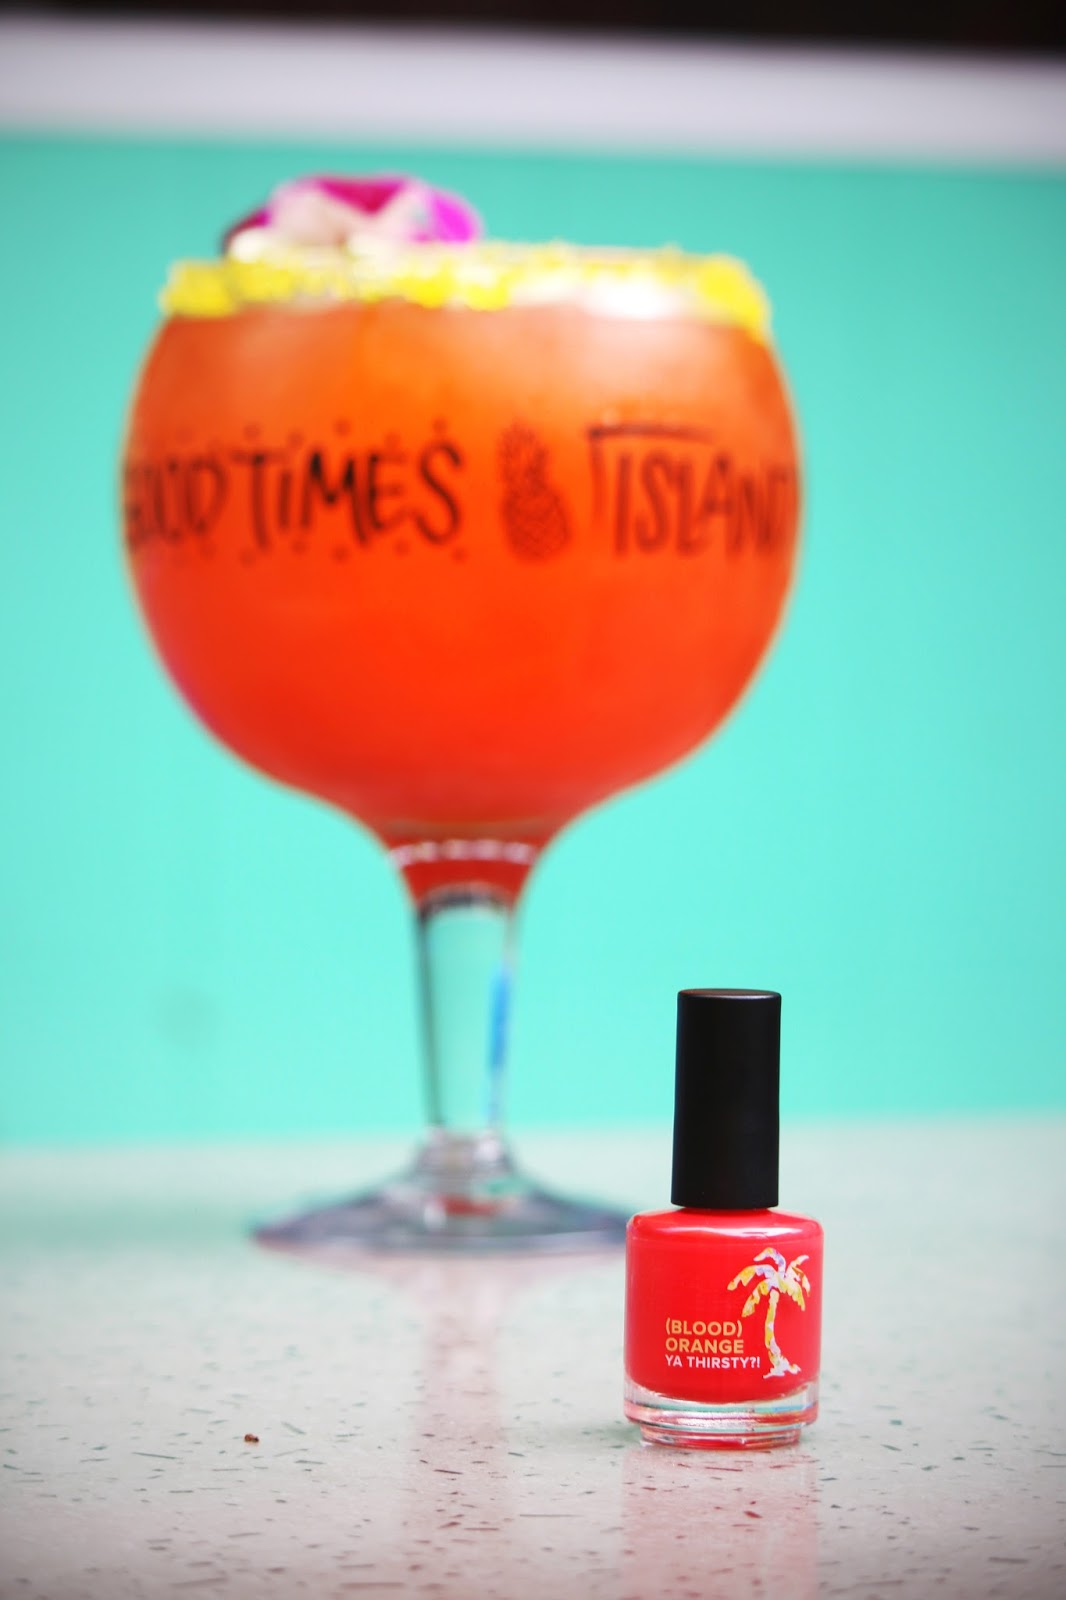 Bahama Breeze Celebrates National Margarita Day with Limited Edition Nail Polish Collection  via  www.productreviewmom.com